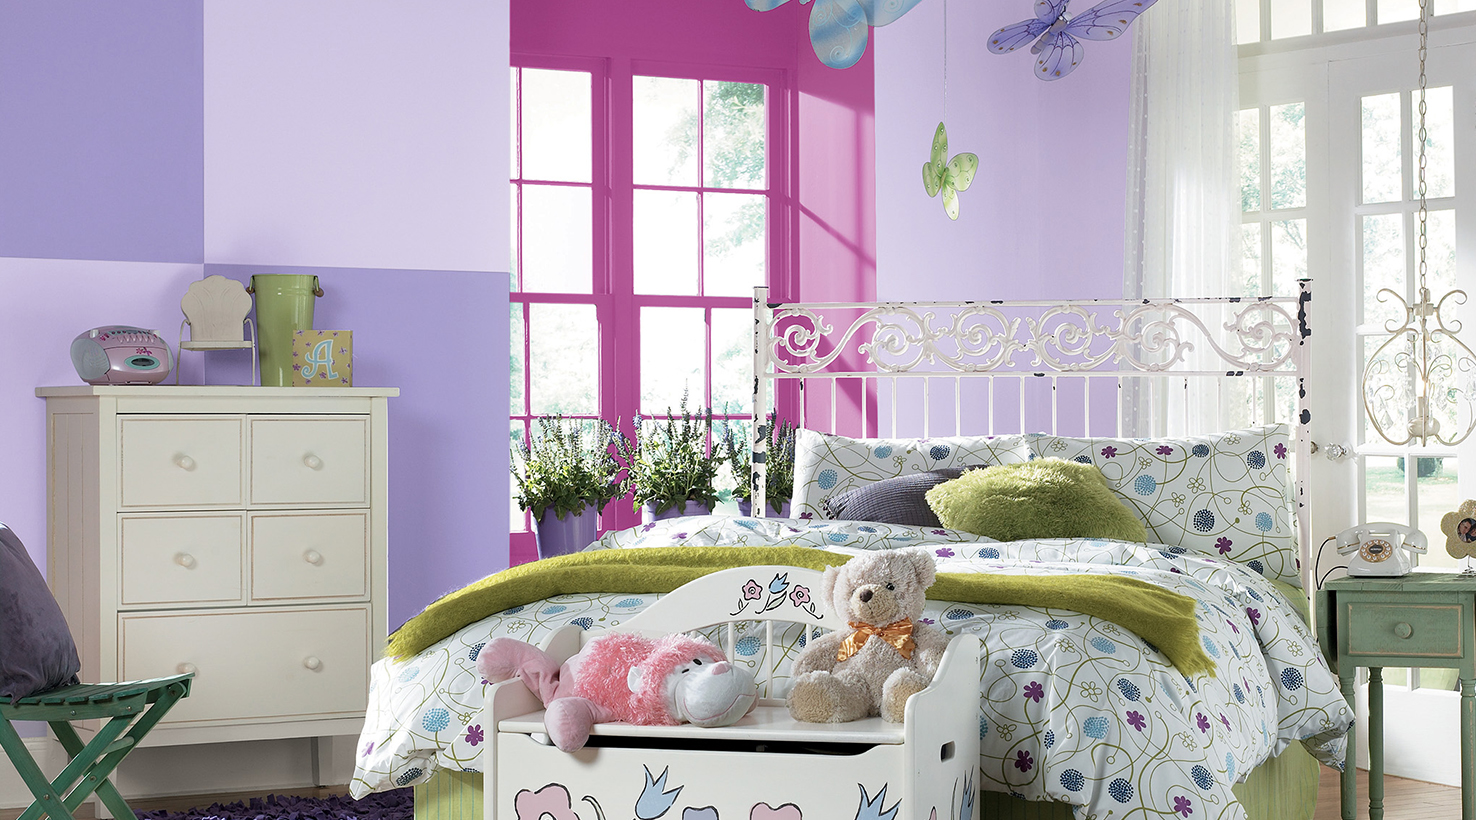 Teen Room Color Inspiration by Sherwin-Williams